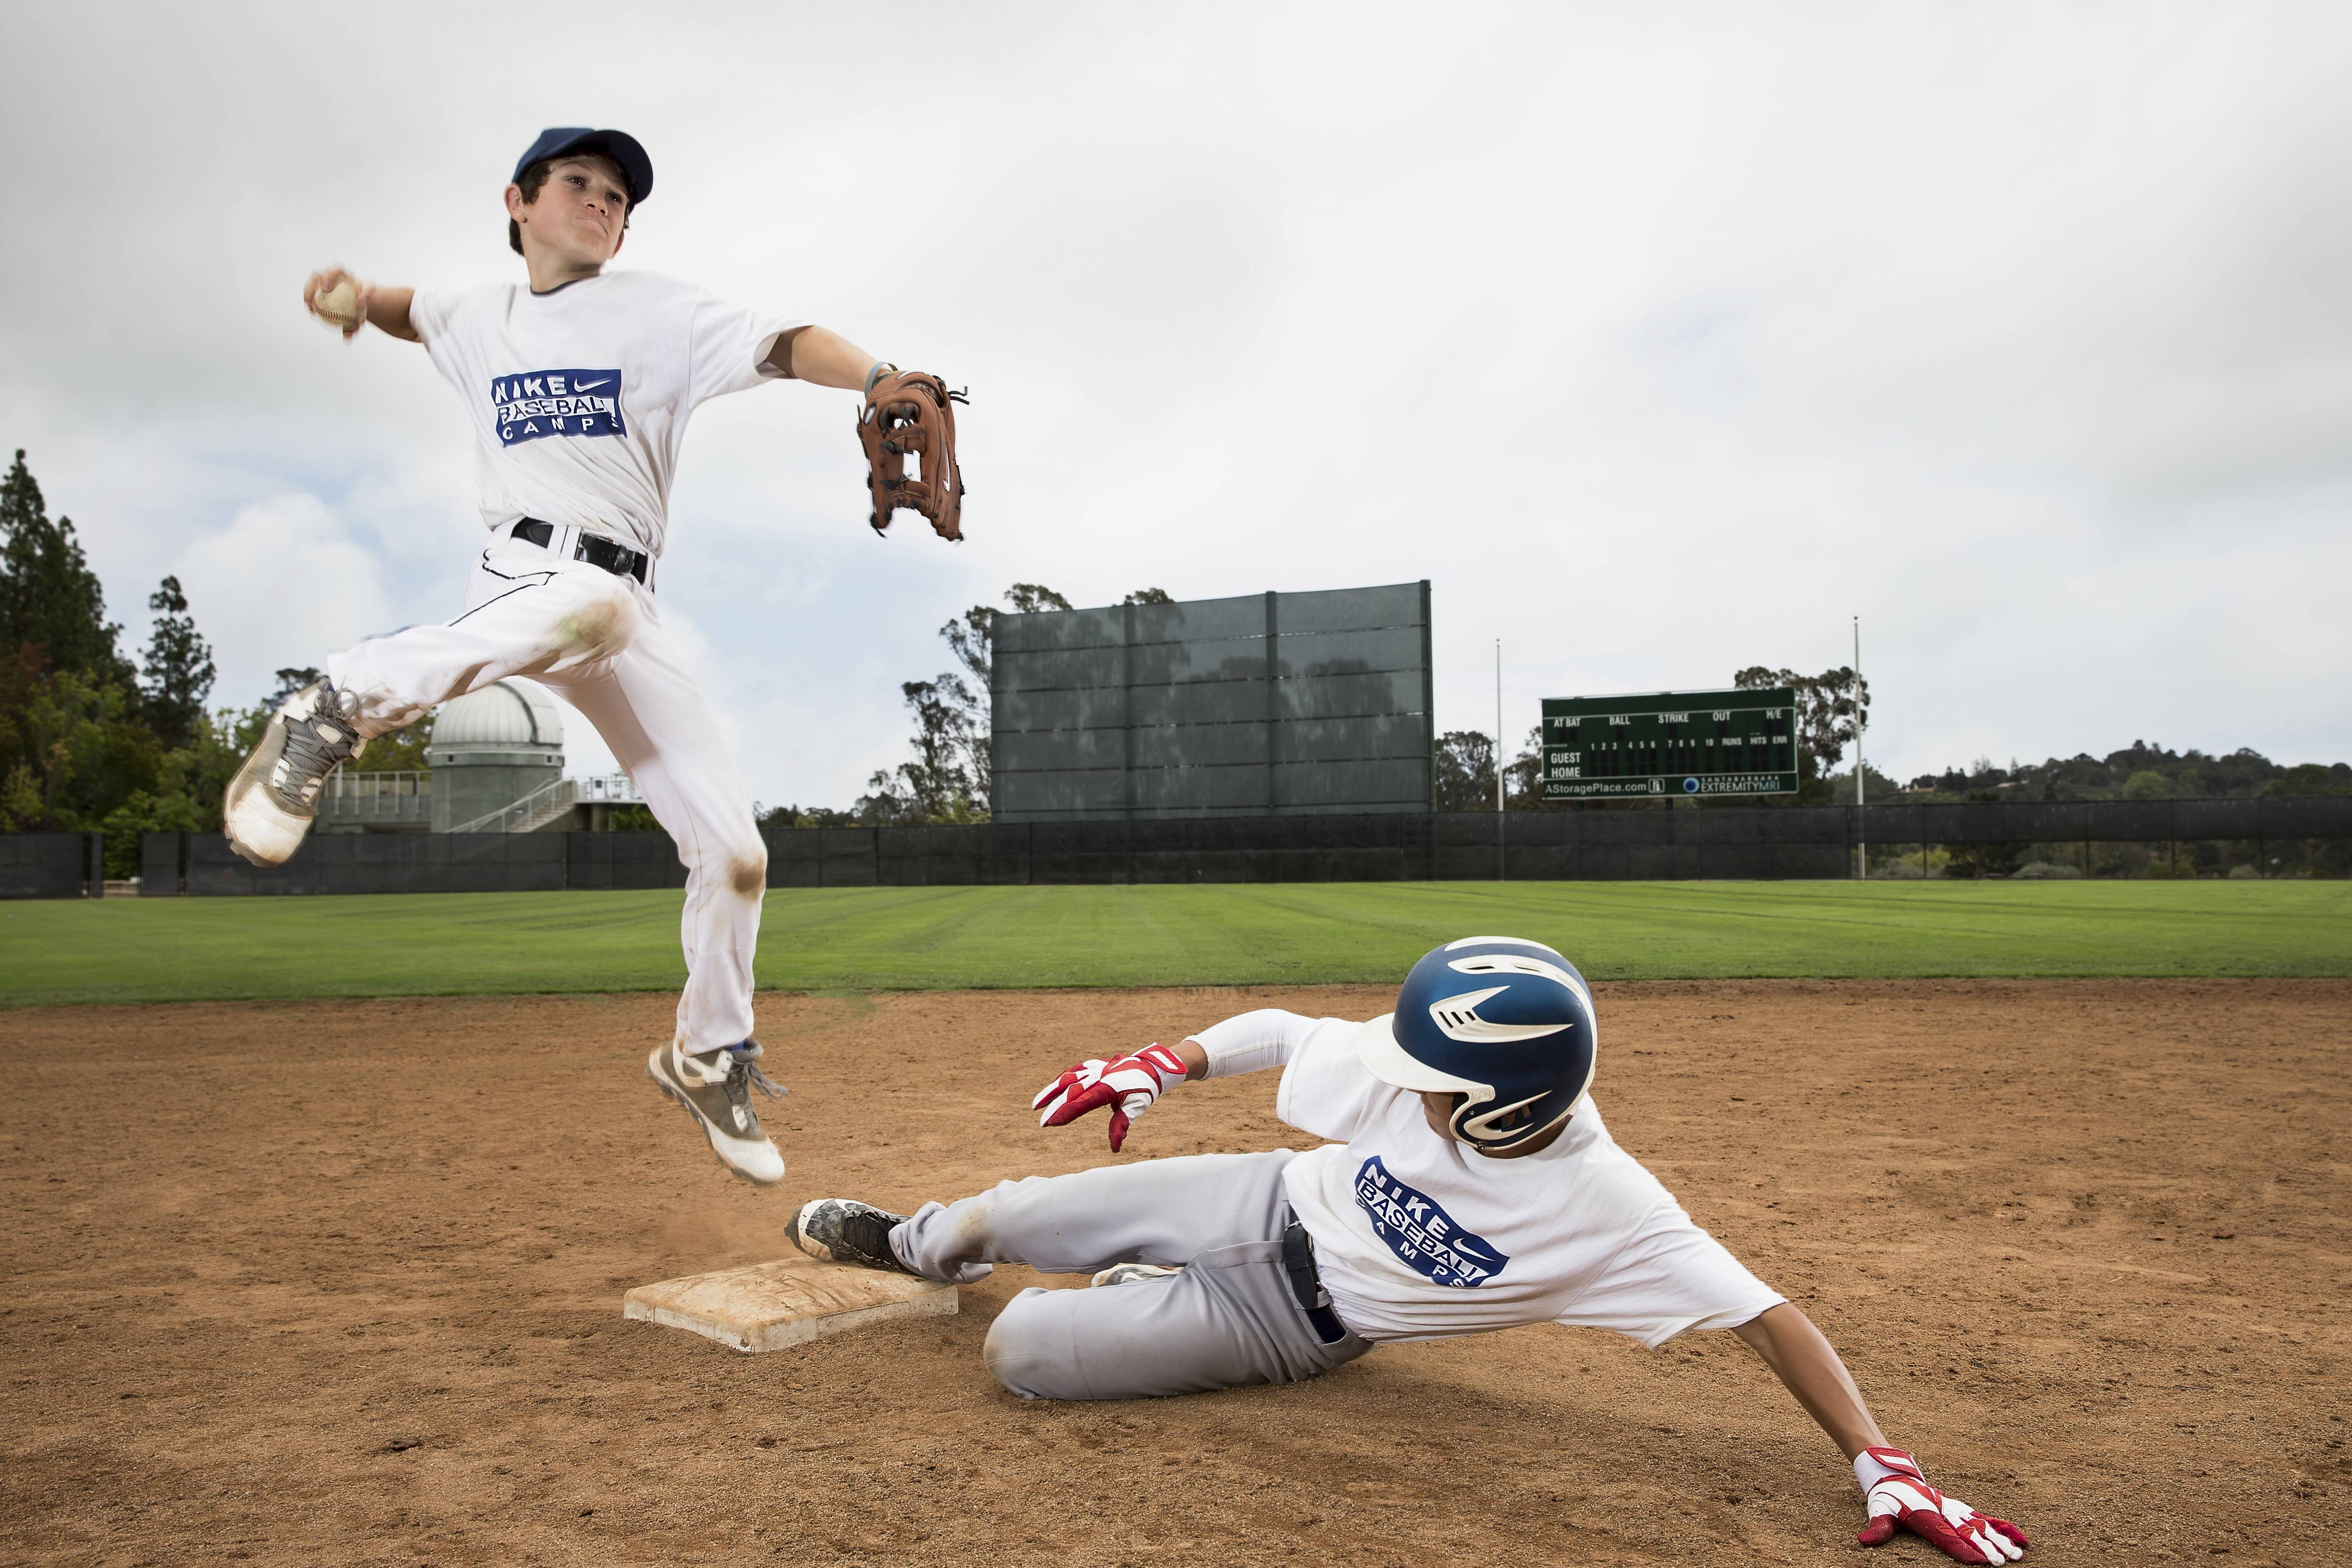 Kids turn a double play at the Nike Baseball Camp summer program in Santa Barbara, California.